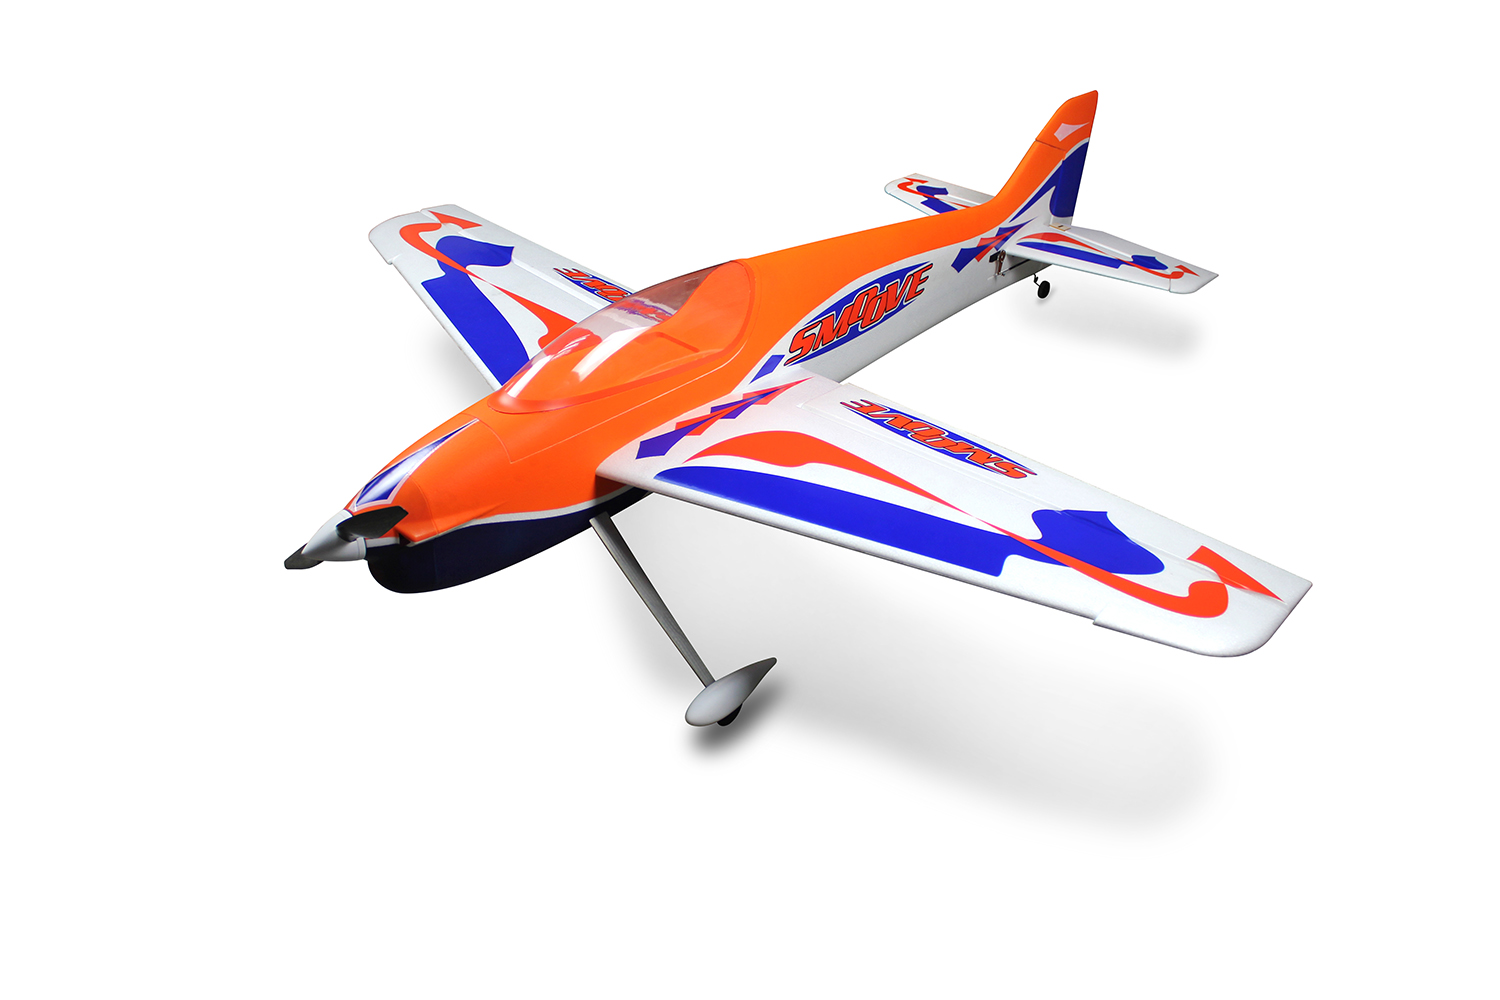 Dynam 1660mm EPO Foam Smoove RC Airplane KIT CF Propeller Model W/O ESC Motor TH03634 image